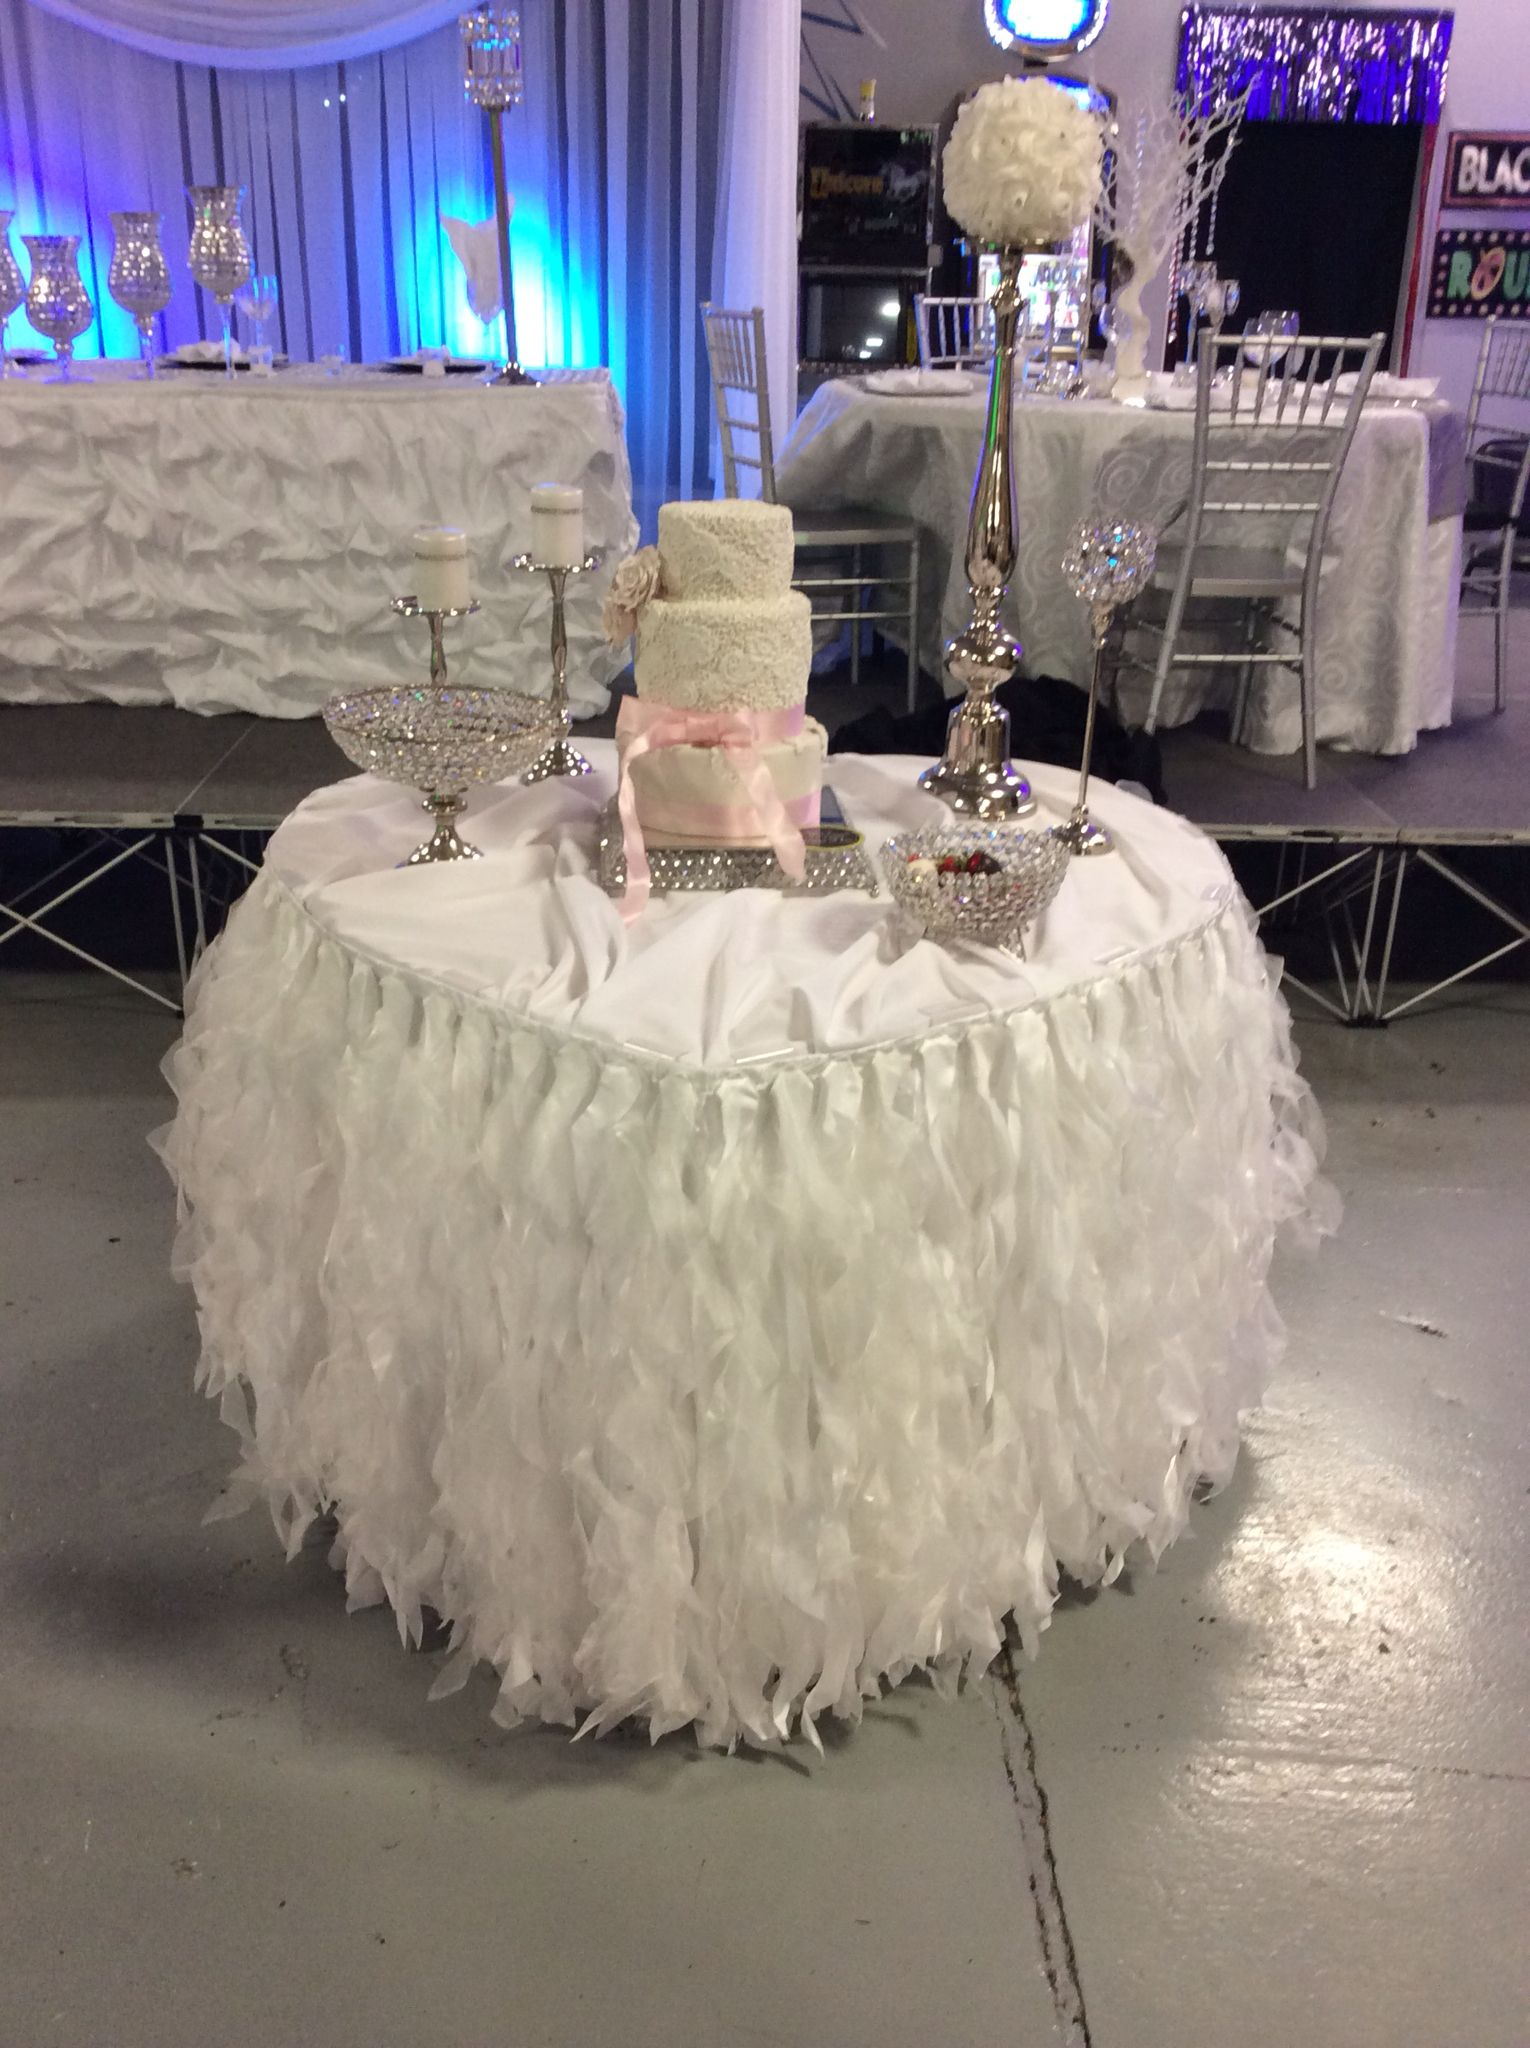 Sweetheart Table Cake Table Crystal Cake Stand Crystal Dessert Bowls Heart Shaped Table White Sweetheart L Crystal Cake Stand Wedding Rentals Crystal Cake